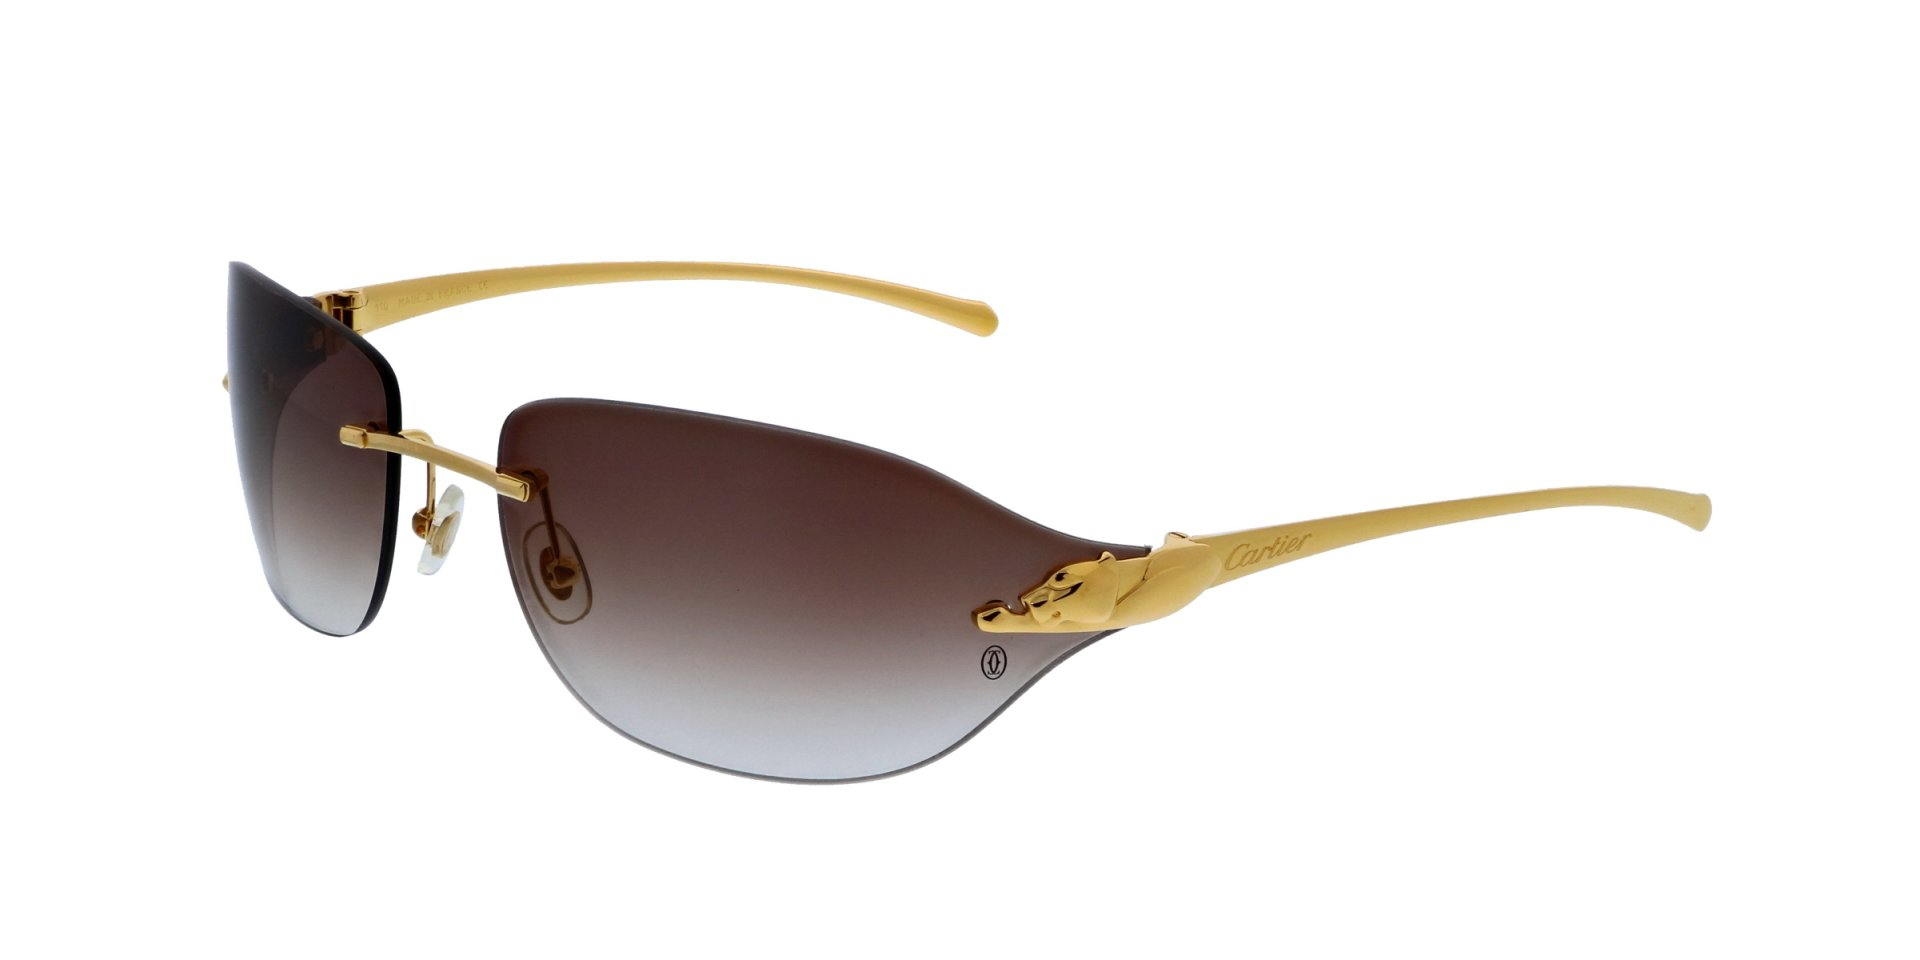 35cac0cf34 Sunglasses CARTIER